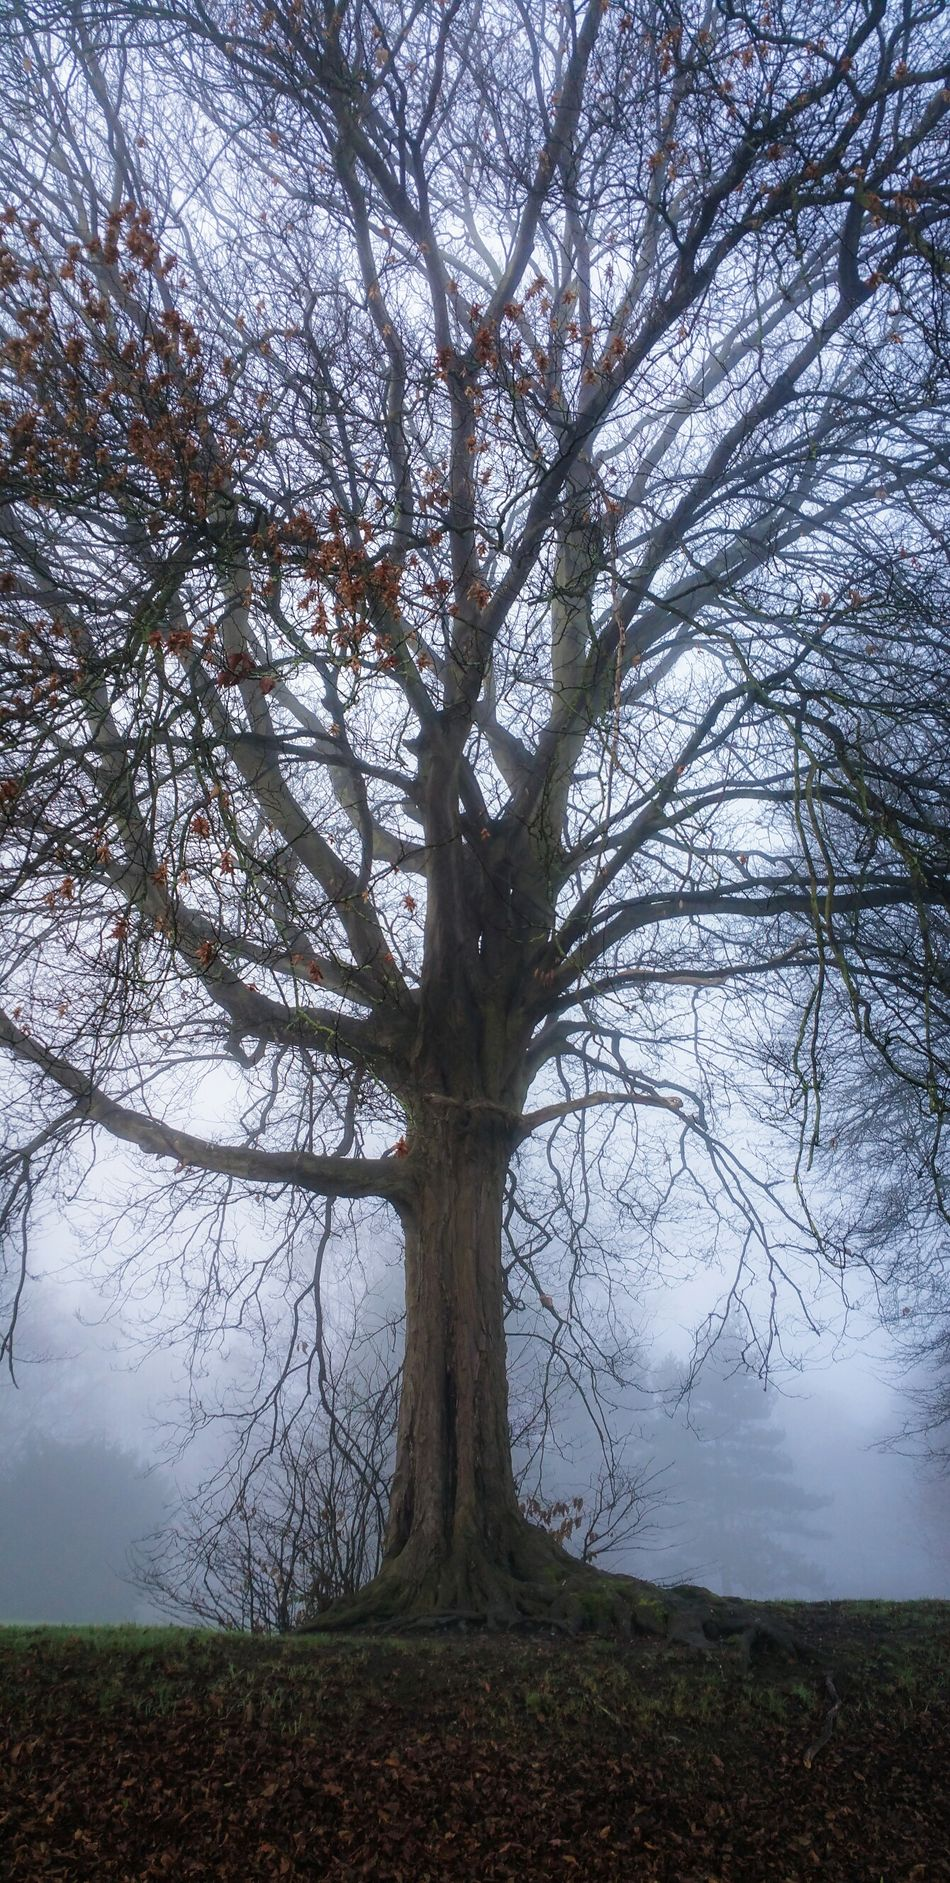 A Tree in Fog Tree Nature No People Growth Tranquility Beauty In Nature Outdoors Scenics Landscape Branch Grass Single Tree Foggy Park Autumn Fall Wales Newtown Powys Countryside Britain Old Tree Misty Mornings Cold Weather